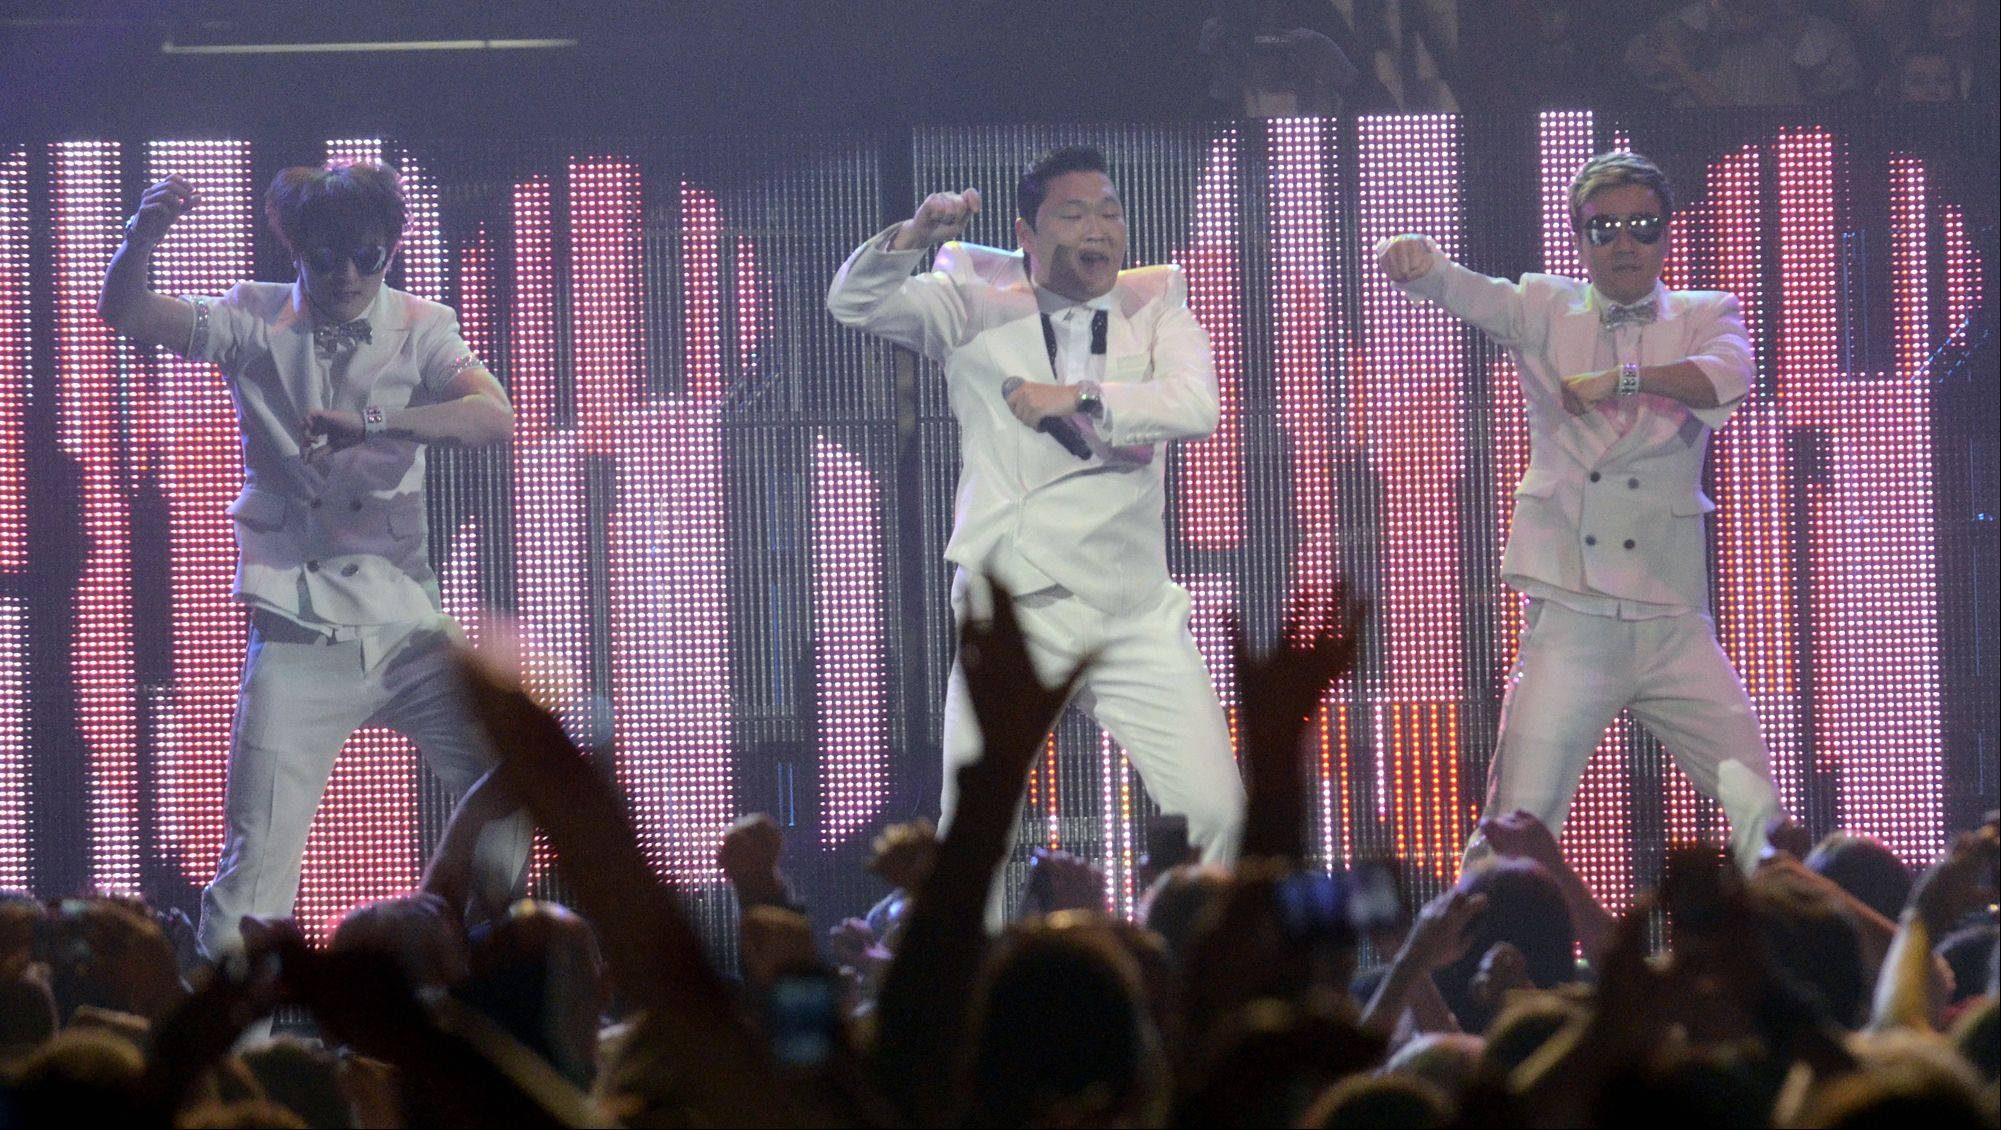 Psy performs during the Jingle Bash concert at the Allstate Arena in Rosemont on Saturday, December 15th, 2012.